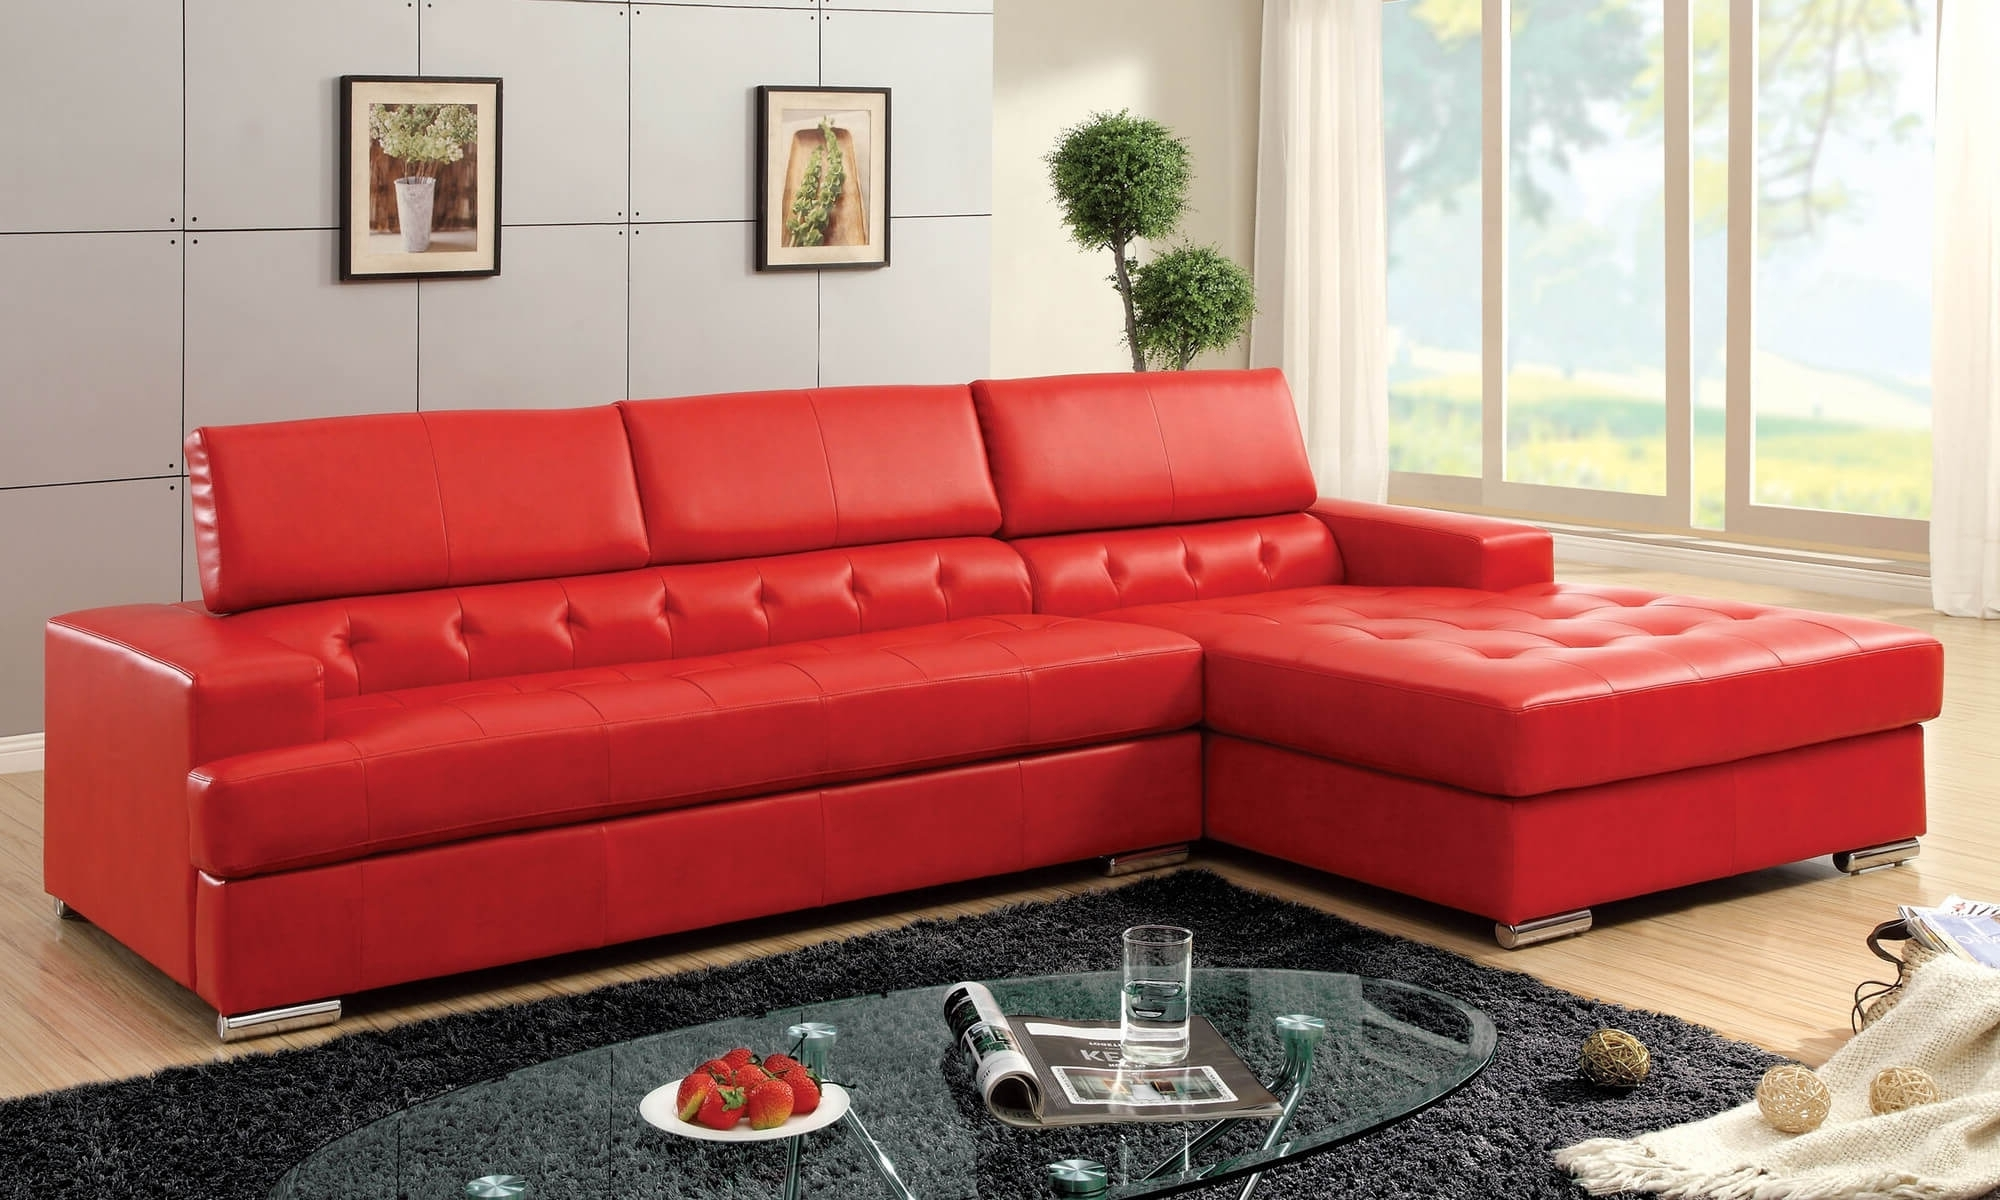 2018 Red Black Sectional Sofas For Sofas : Red Sectional Couch L Sofa Modular Sectional Sofa Gray (View 12 of 15)